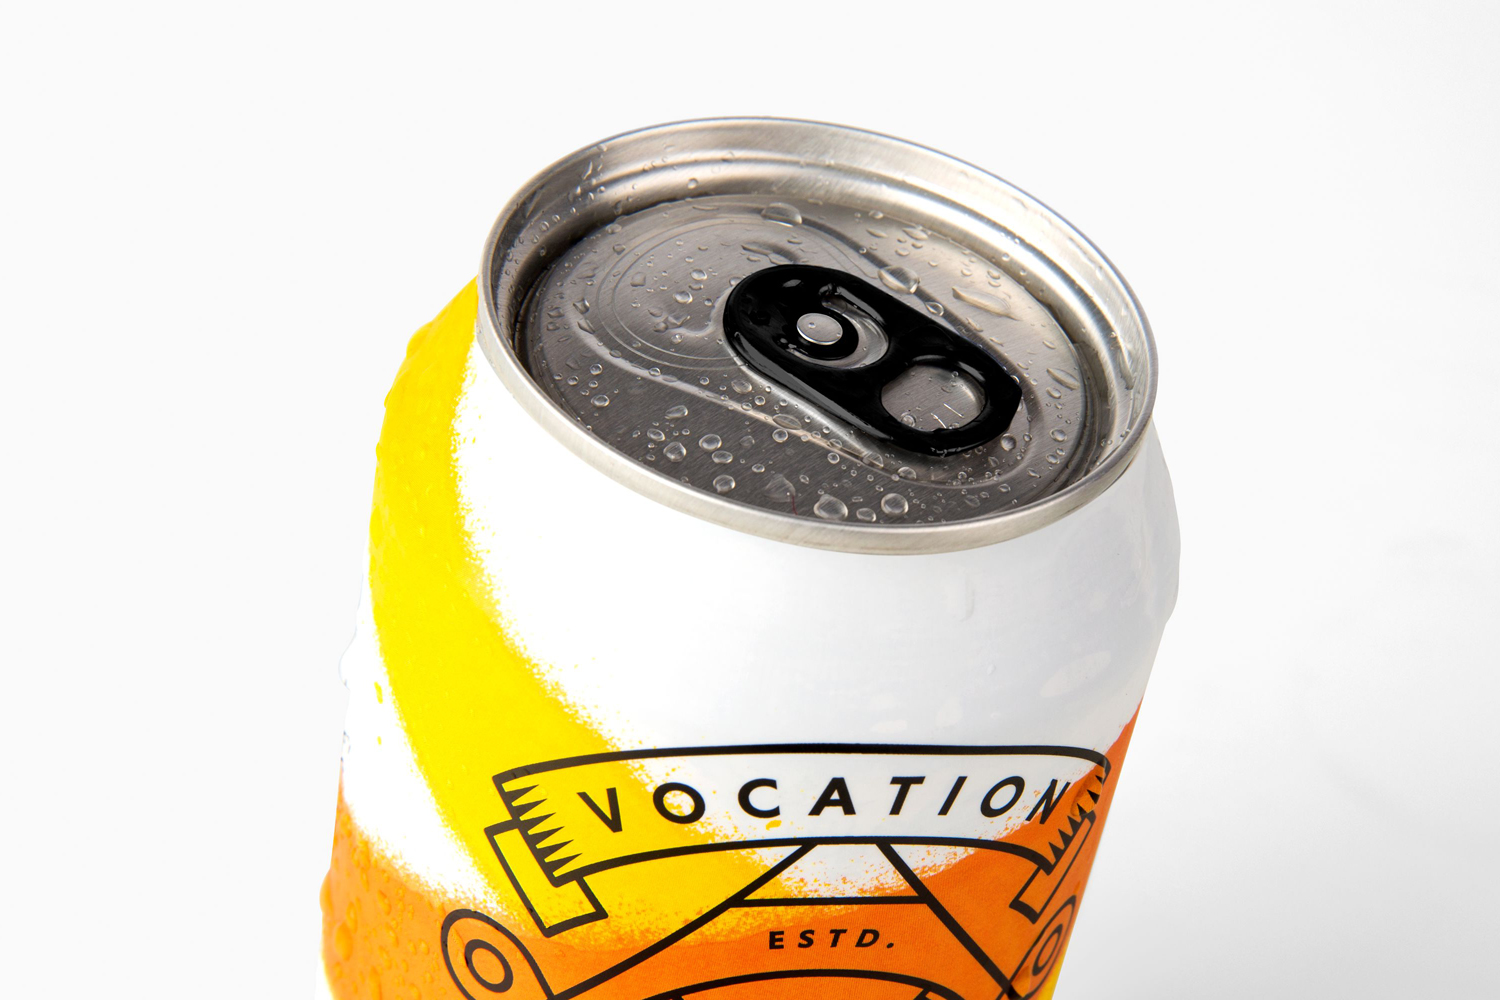 Packaging design by Robot Food for British brewery Vocation's latest release, a craft lager.